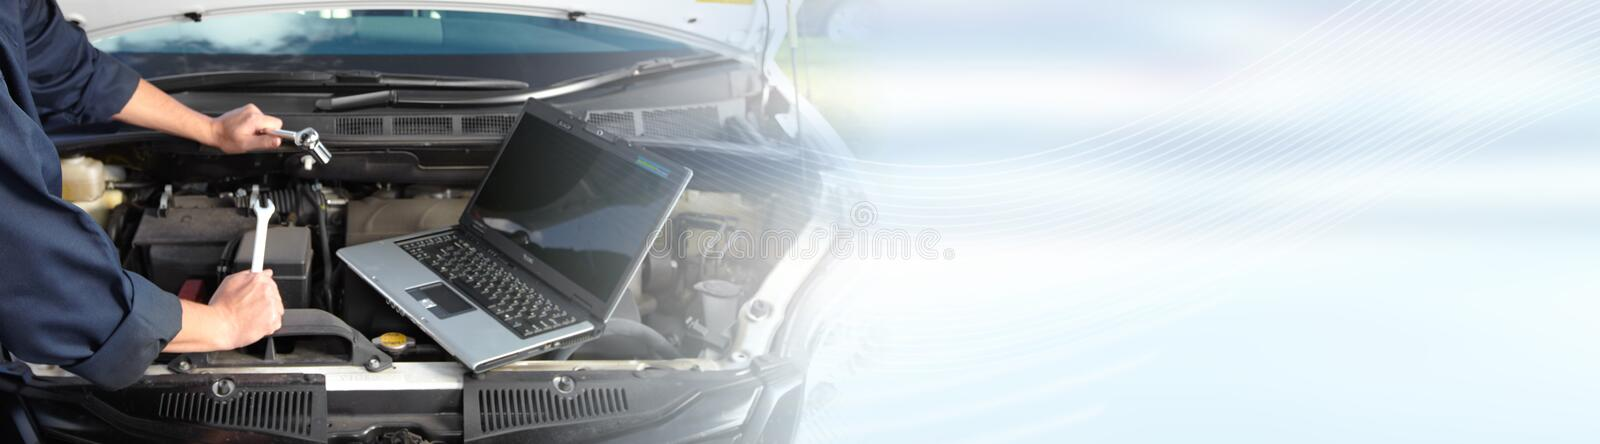 Car mechanic working in auto repair service. stock images